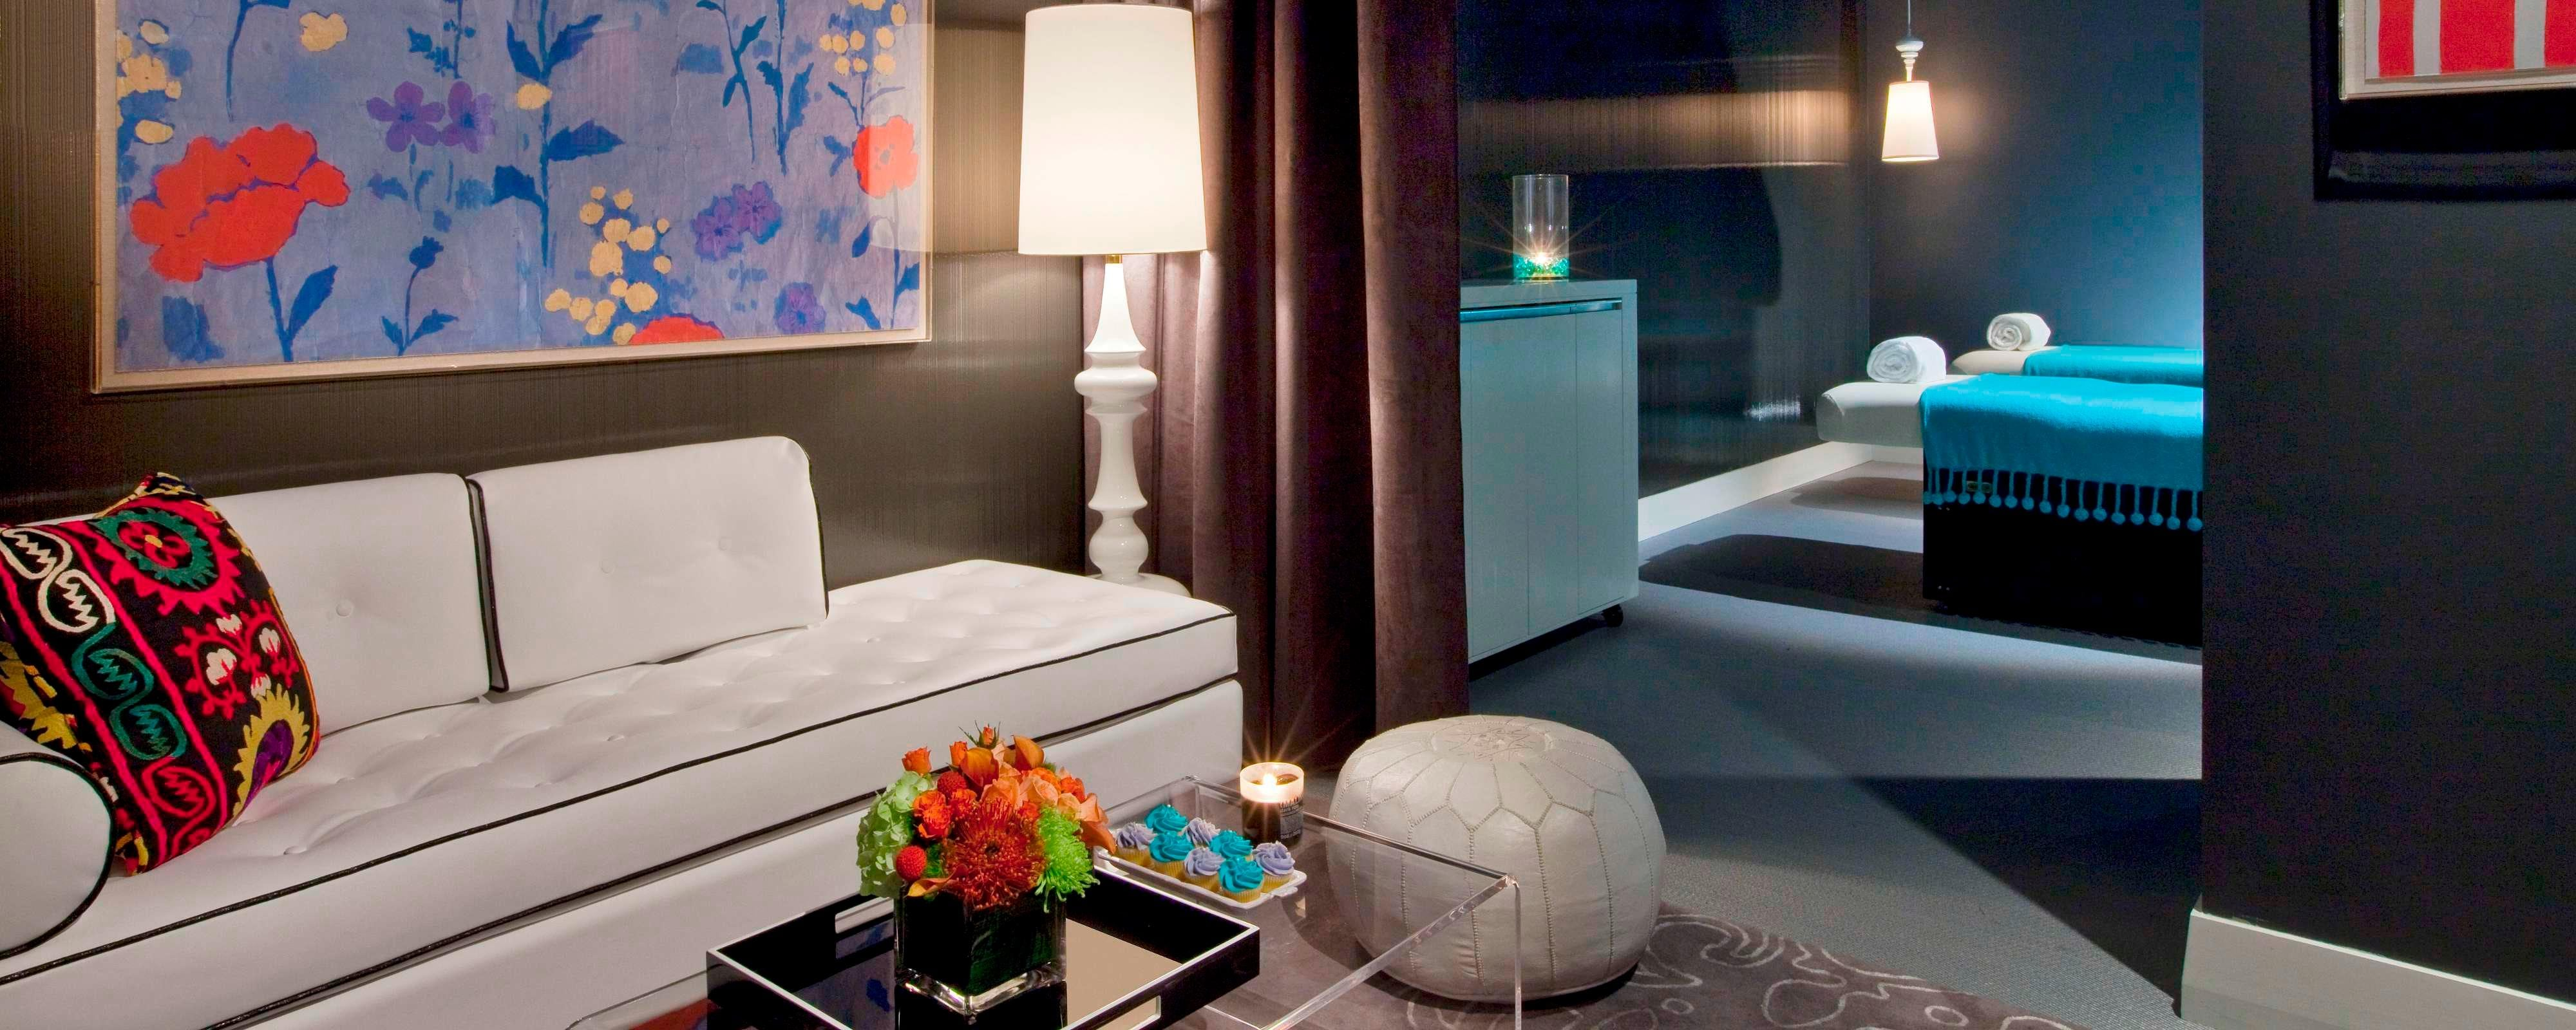 living room theater drink menu egyptian decor hotels in austin tx w soak it at our away spa